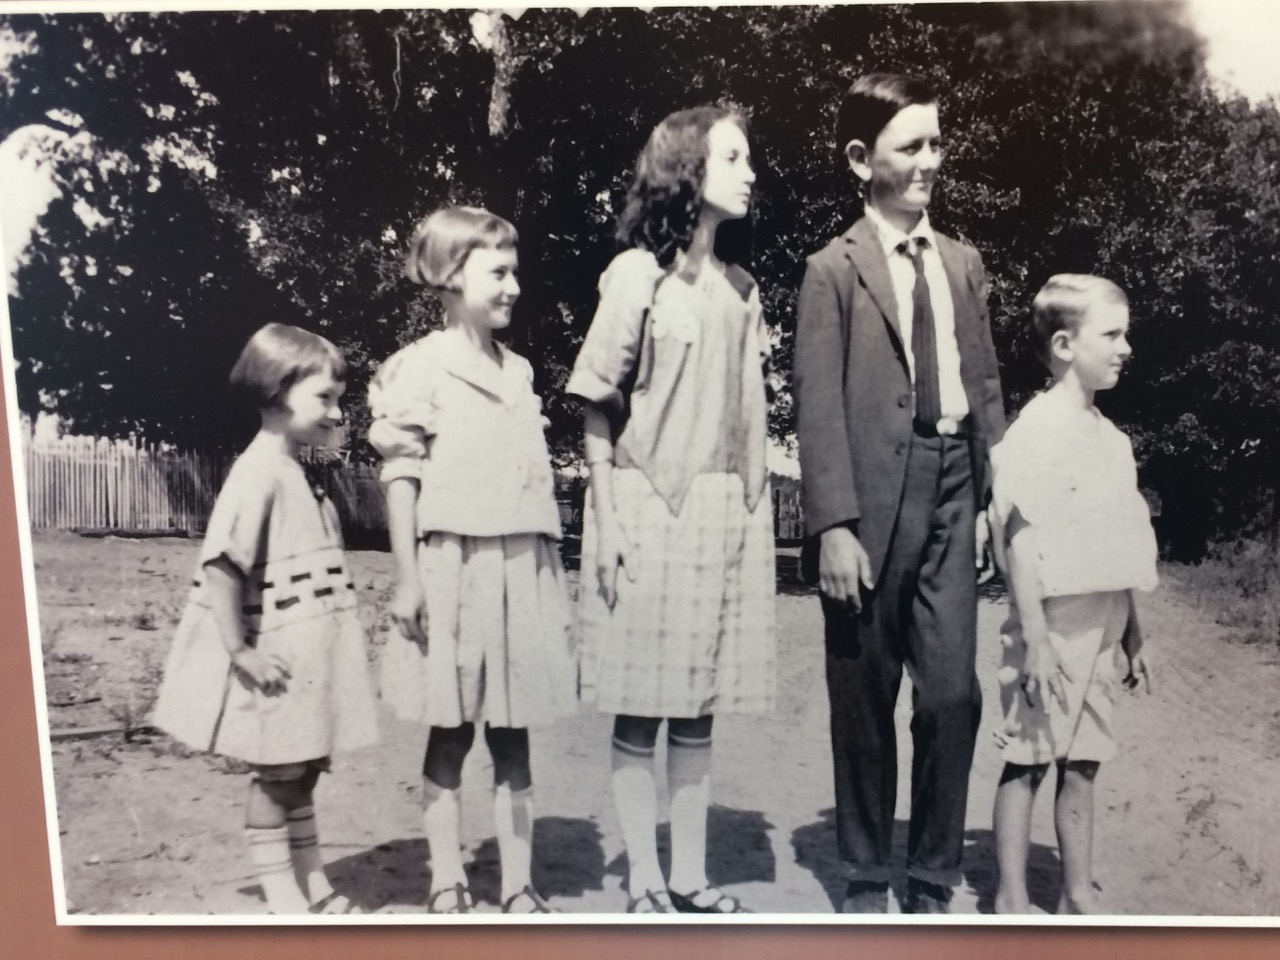 LBJ & Sibs Lyndon Johnson and his siblings (left to right): Lucia, Josefa, Rebekah, Lyndon and Sam Houston Johnson. The Johnson family ancestors first settled central Texas' Hill Country in the mid-1800s. Photo by Jerry Ondash